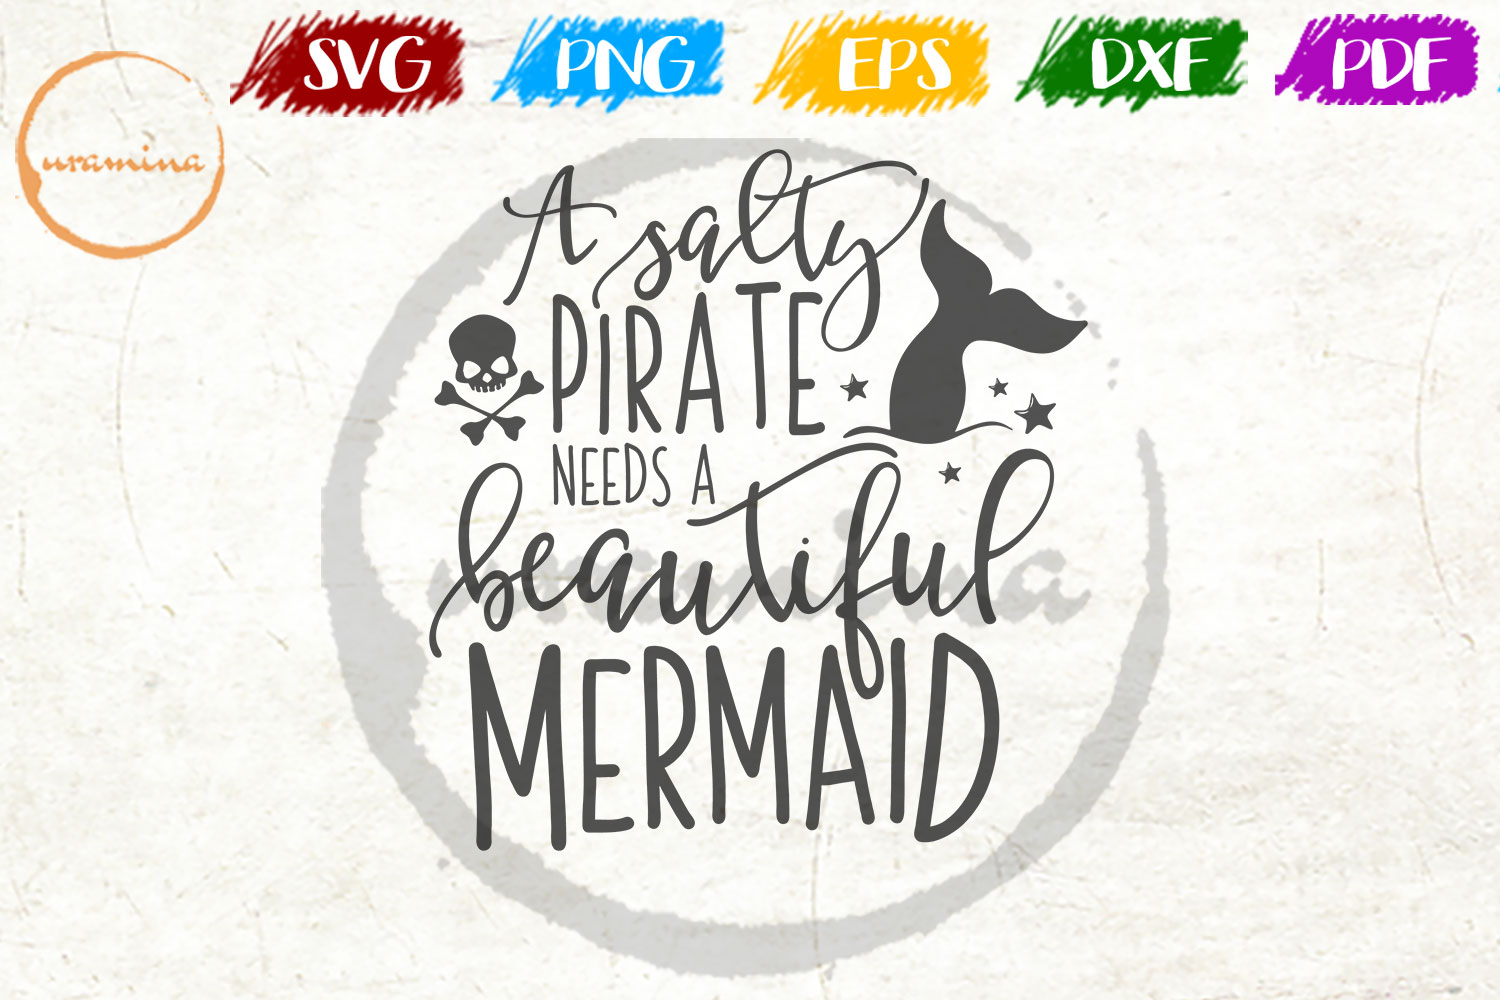 Download Free A Salty Pirate Needs A Beautiful Mermaid Graphic By Uramina for Cricut Explore, Silhouette and other cutting machines.